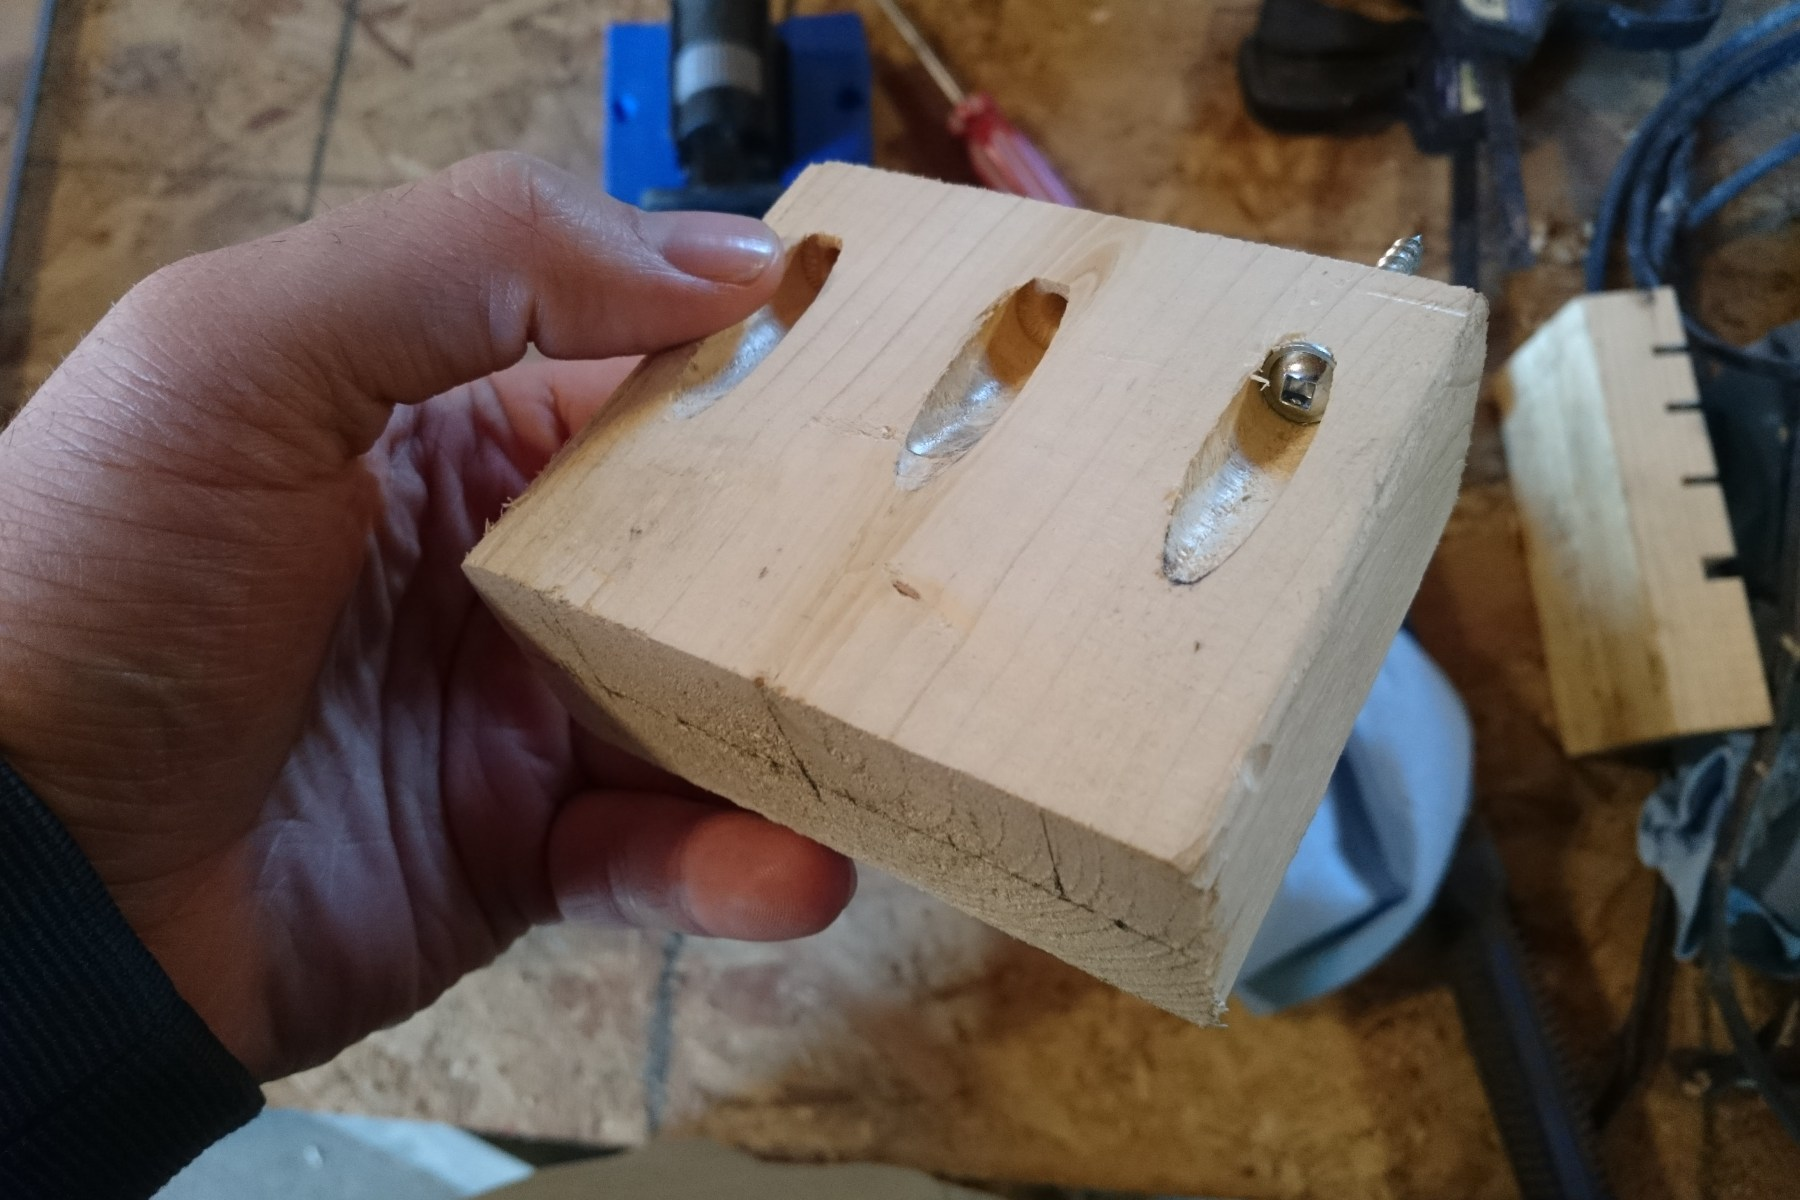 Practice run with pocket holes on a spare piece of wood.